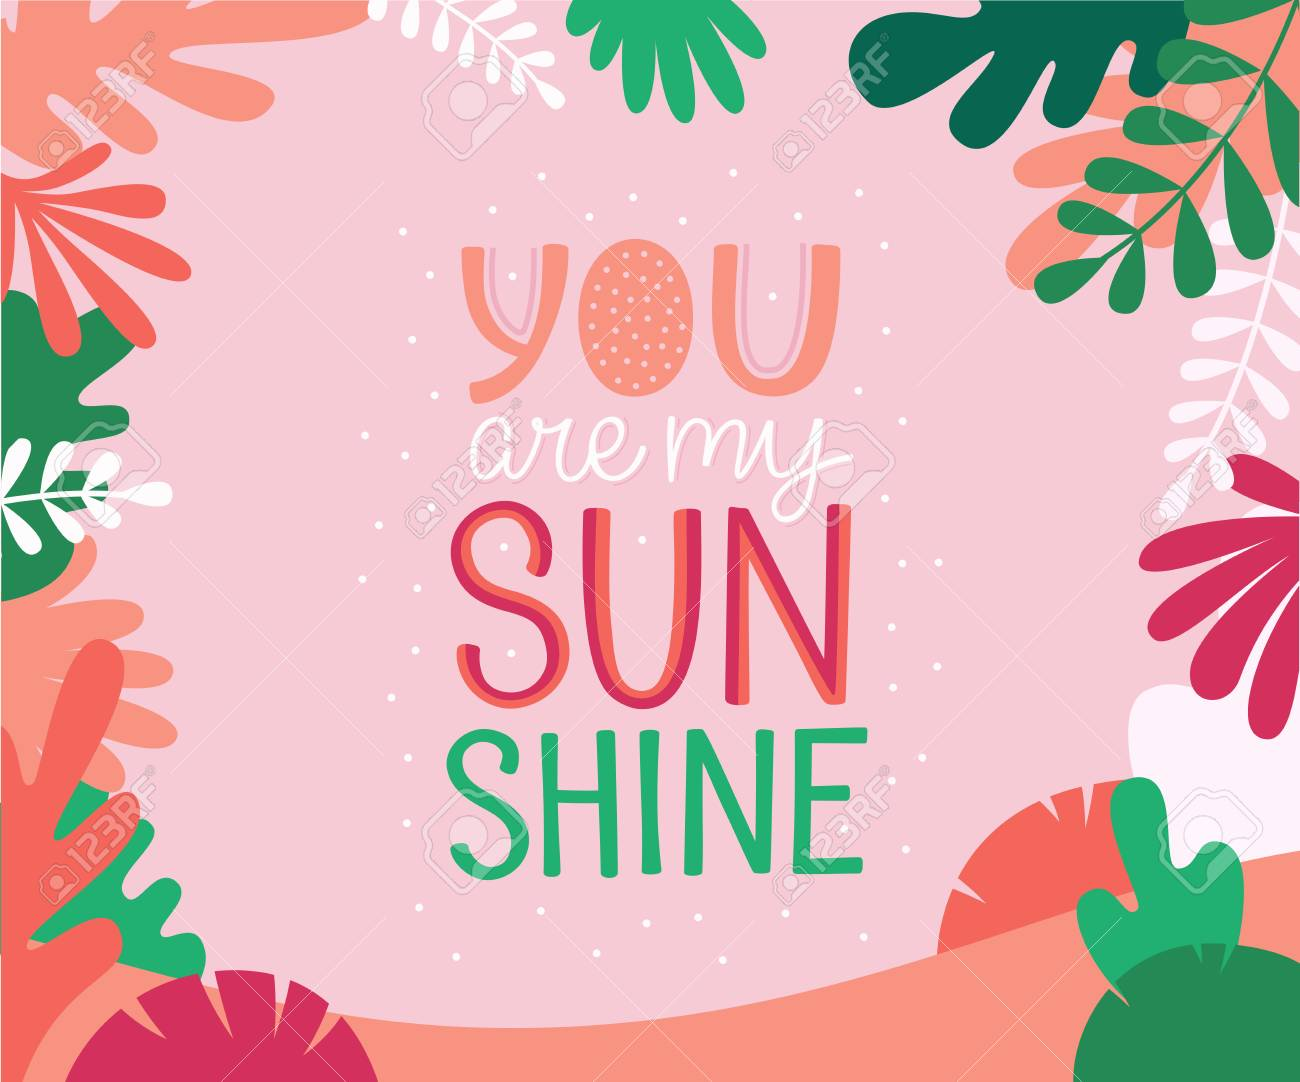 Vector illustration in simple flat linear style with hand lettering phrase you are my sunshine and leaves - valentine's day greeting card, poster design, print for stationery - 116389761